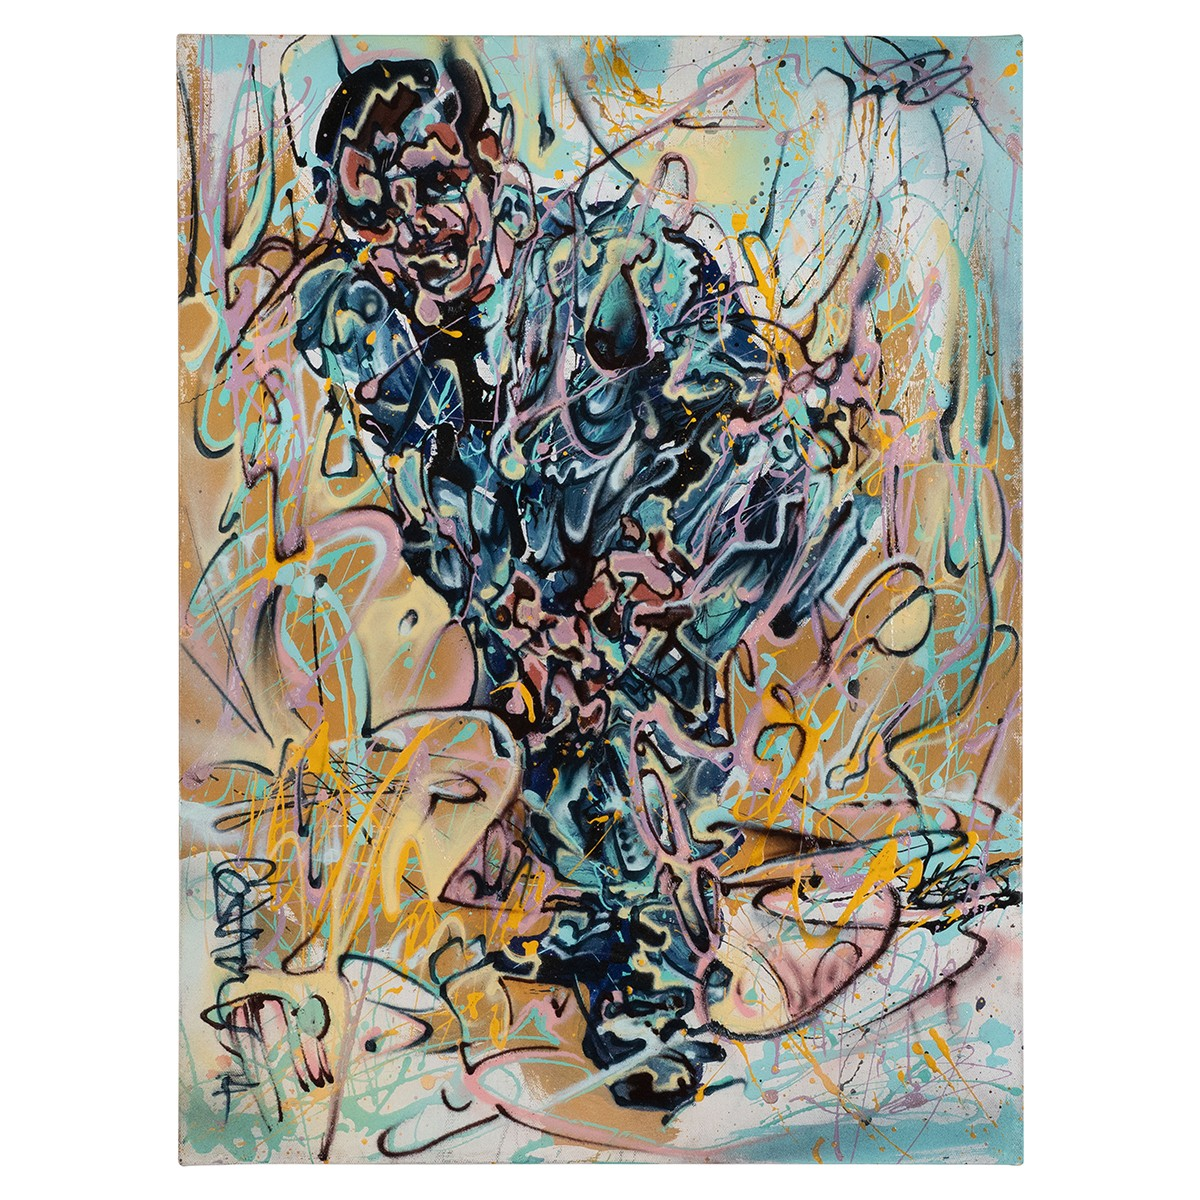 Modern Impressionistic Portrait of Man in Suit by Costain